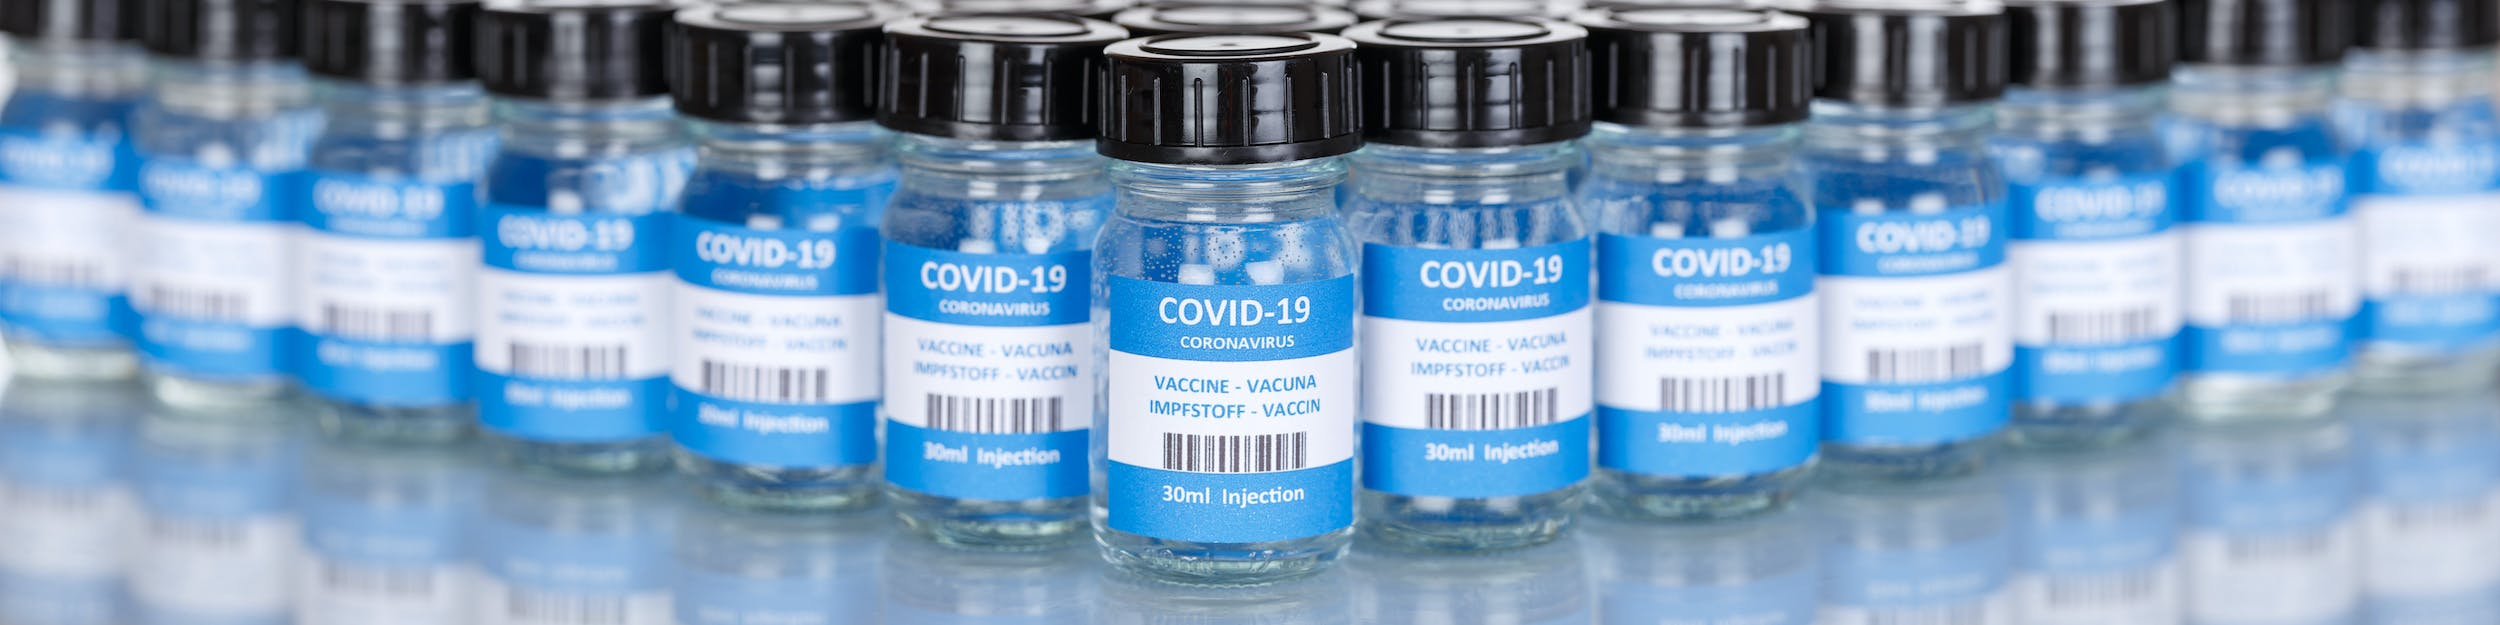 COVID-19 Vaccine Storage in Ultra-Low Temperatures cover image